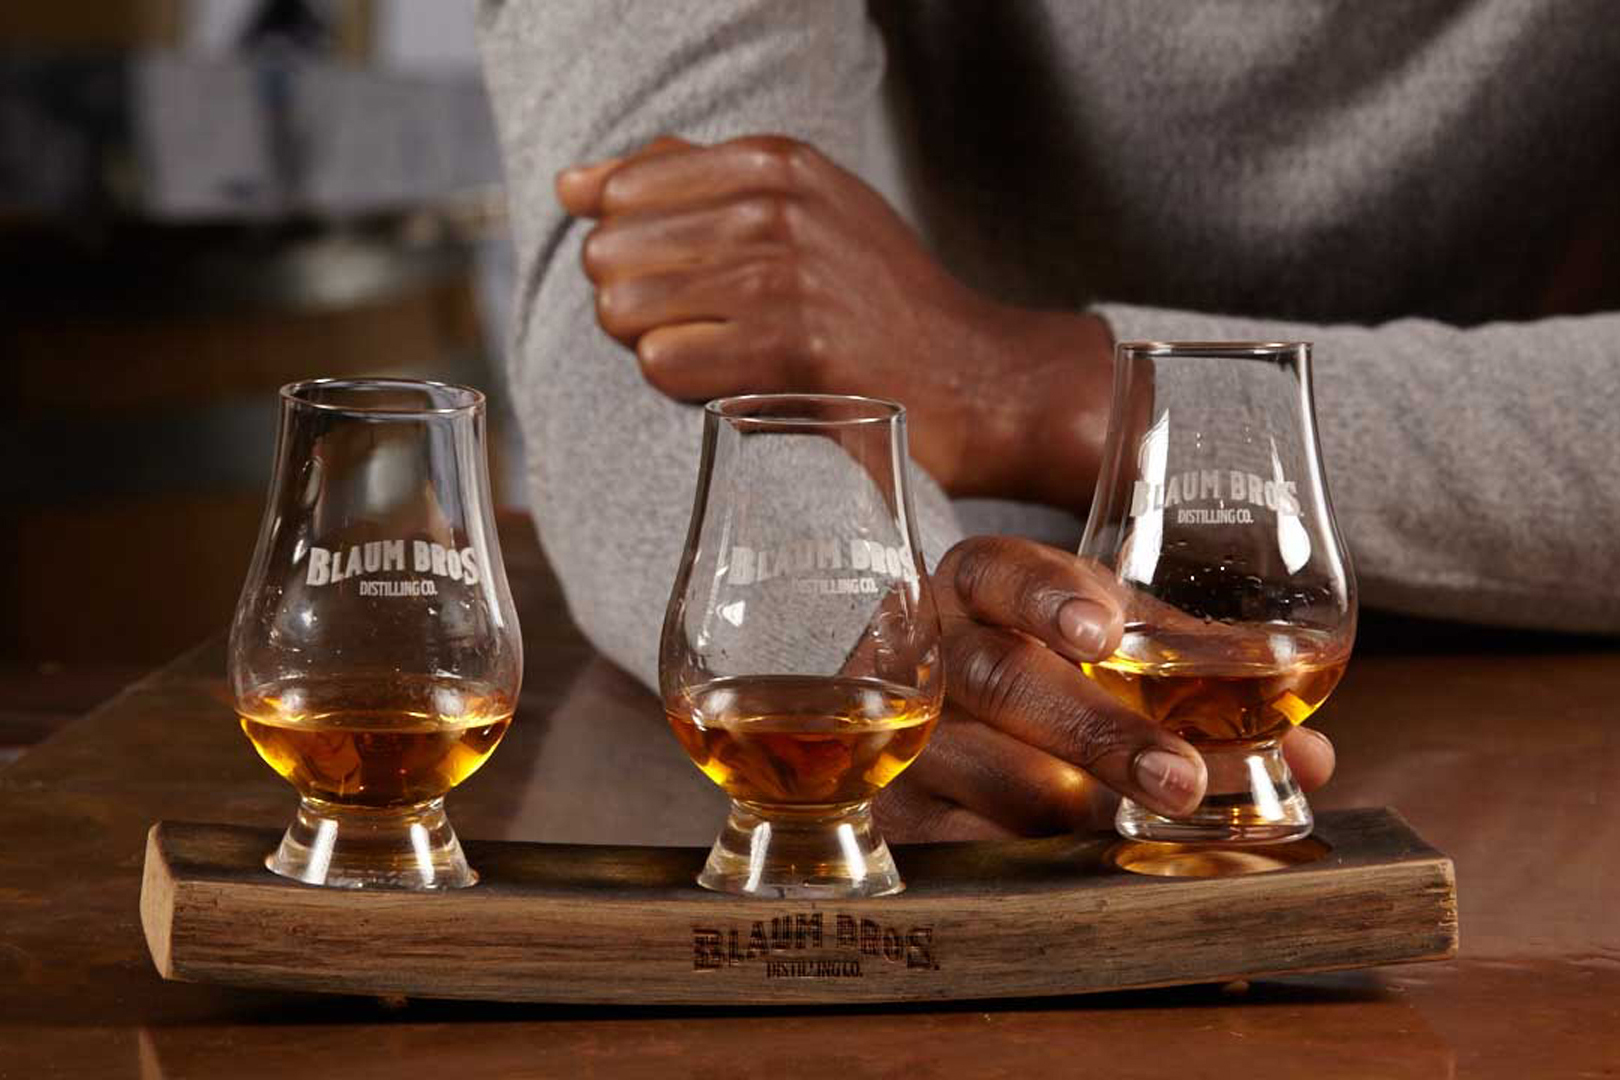 blaum bros whiskey flight